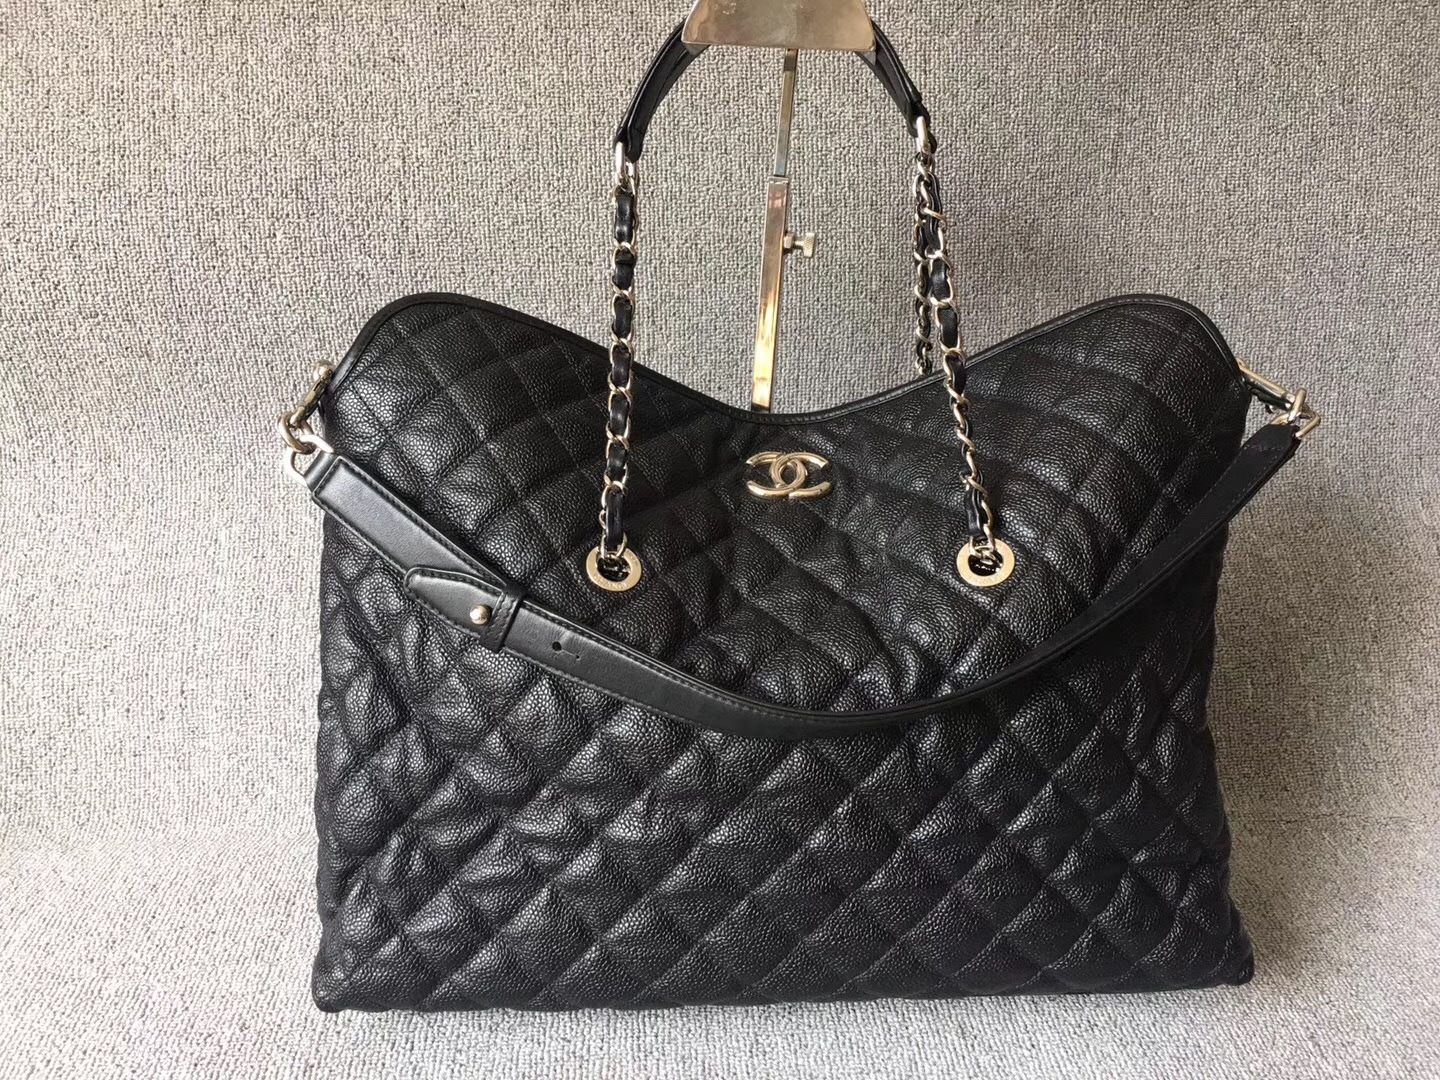 AUTHENTIC CHANEL BLACK QUILTED CAVIAR LARGE 2-WAY SHOPPING TOTE BAG Silver HW